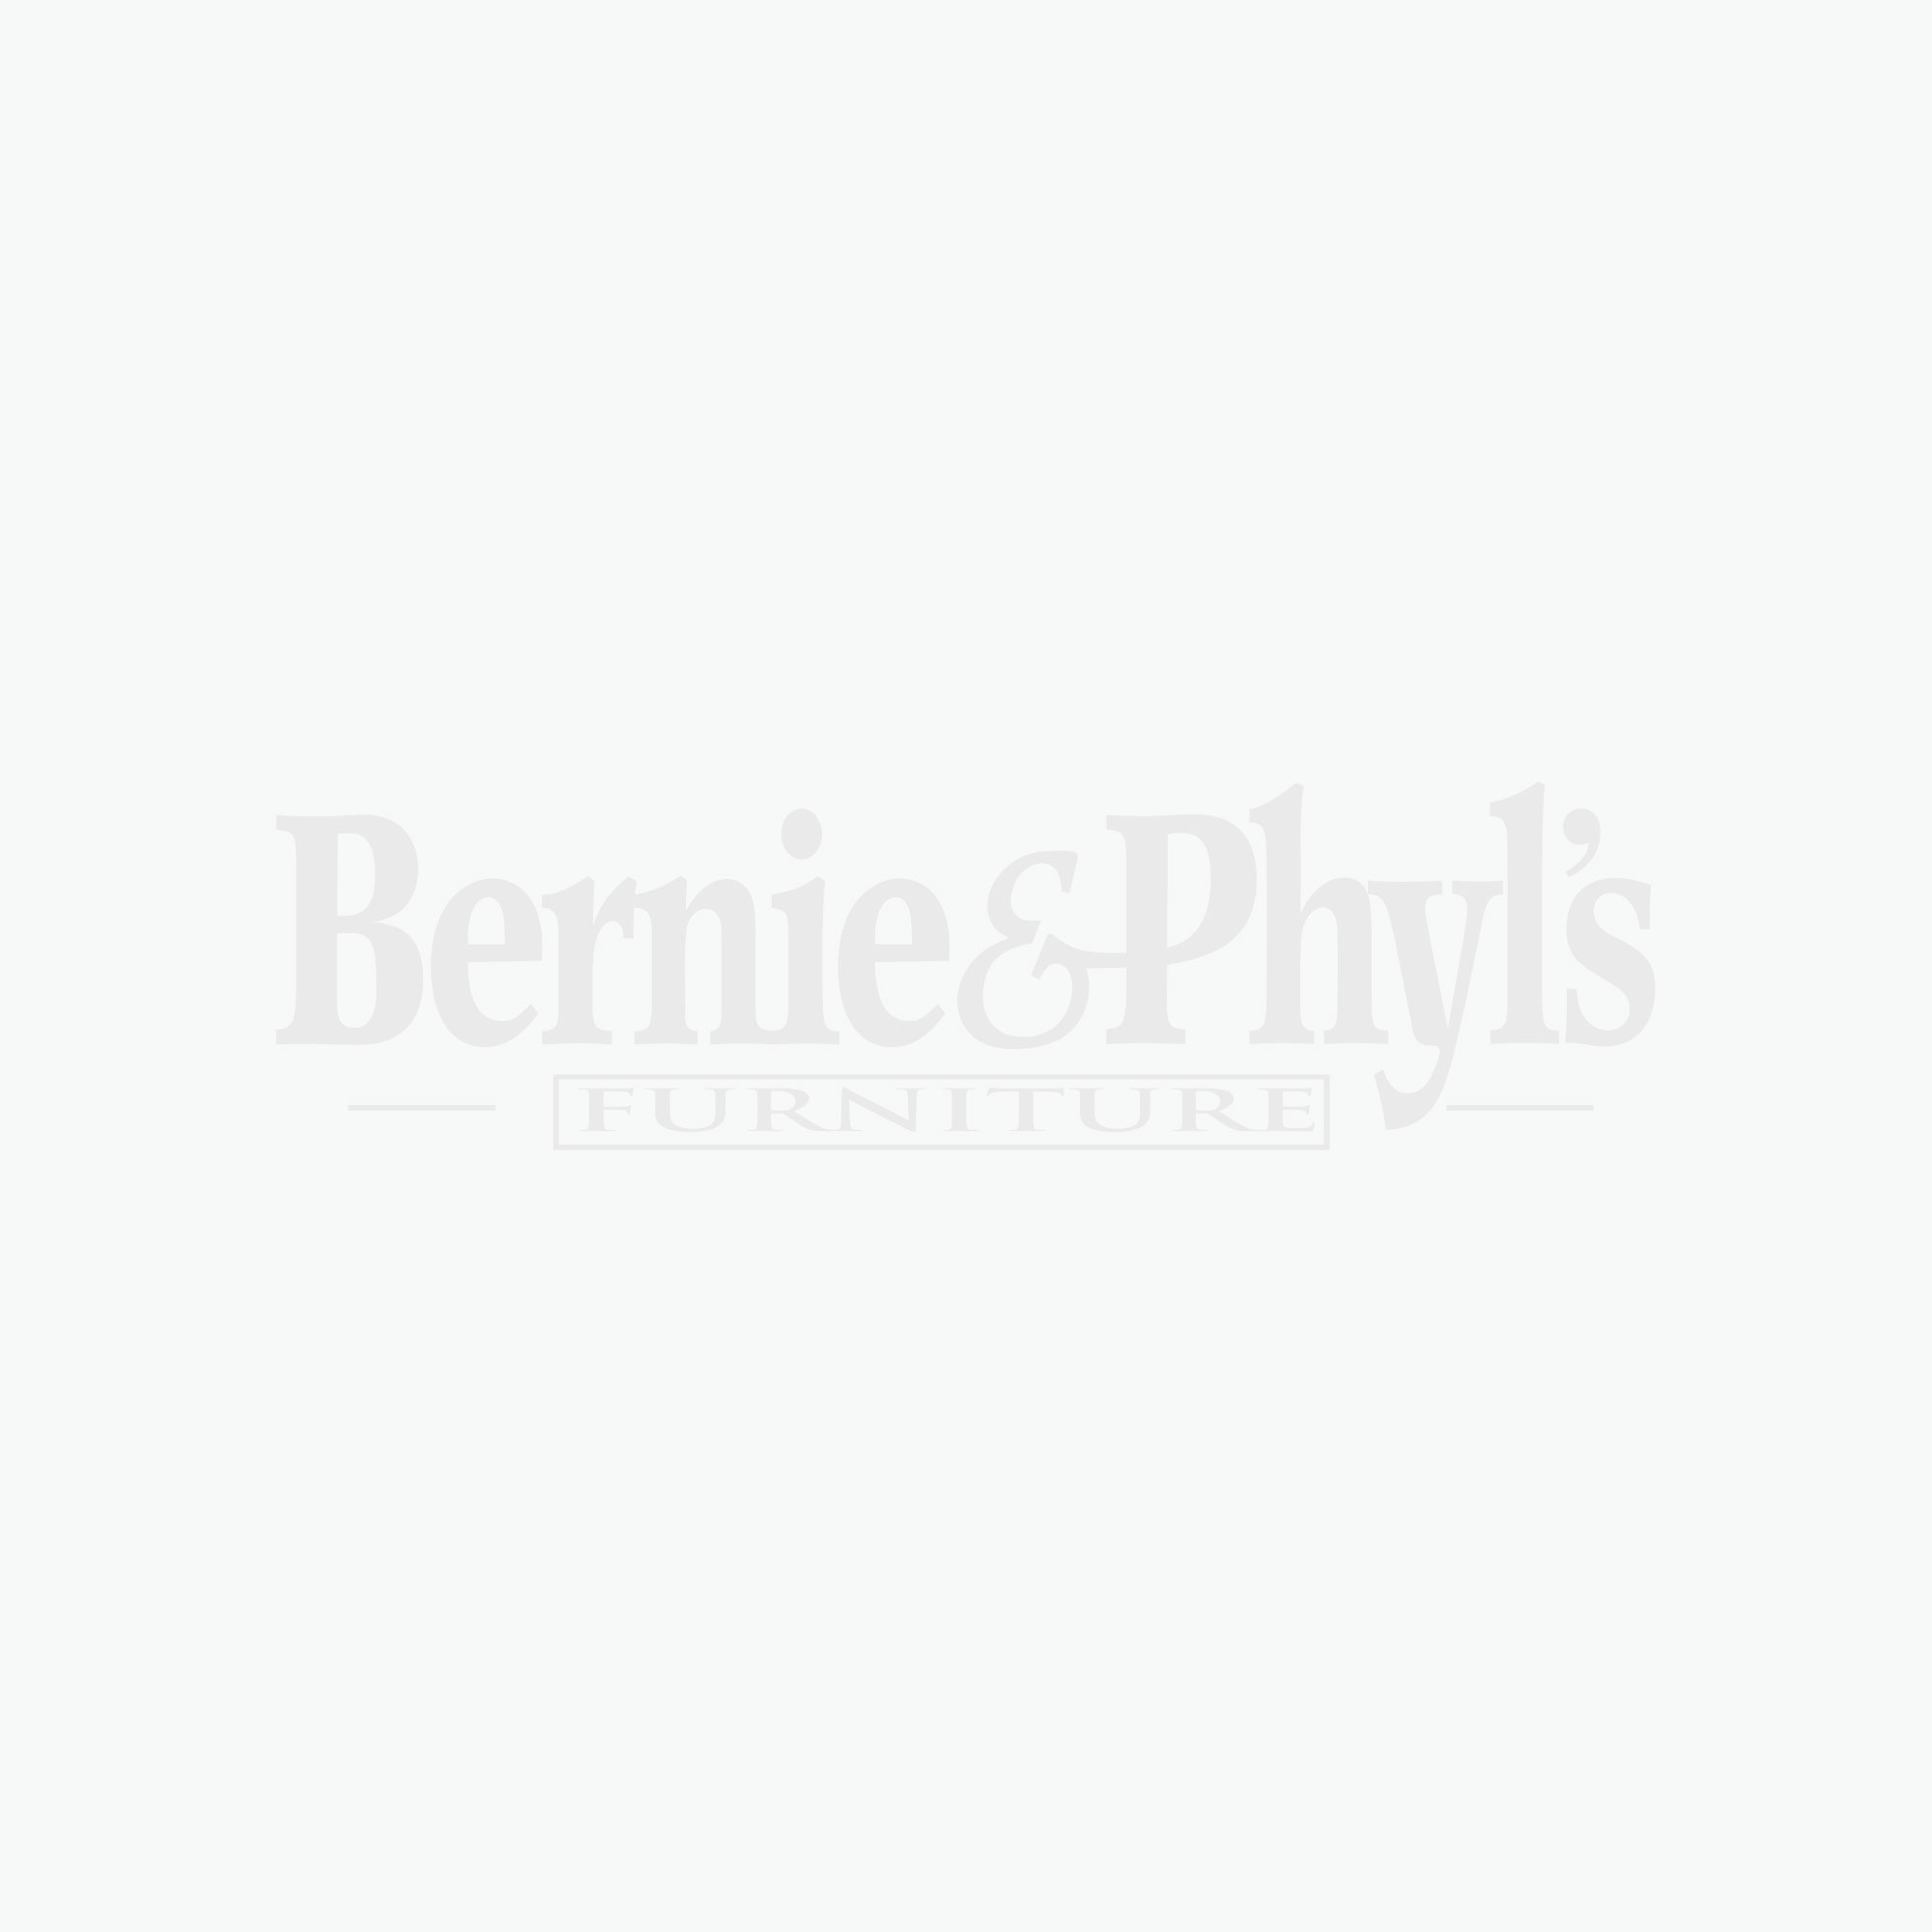 Larkinhurst Earth Rocker Recliner Bernie Phyl S Furniture By Ashley Furniture